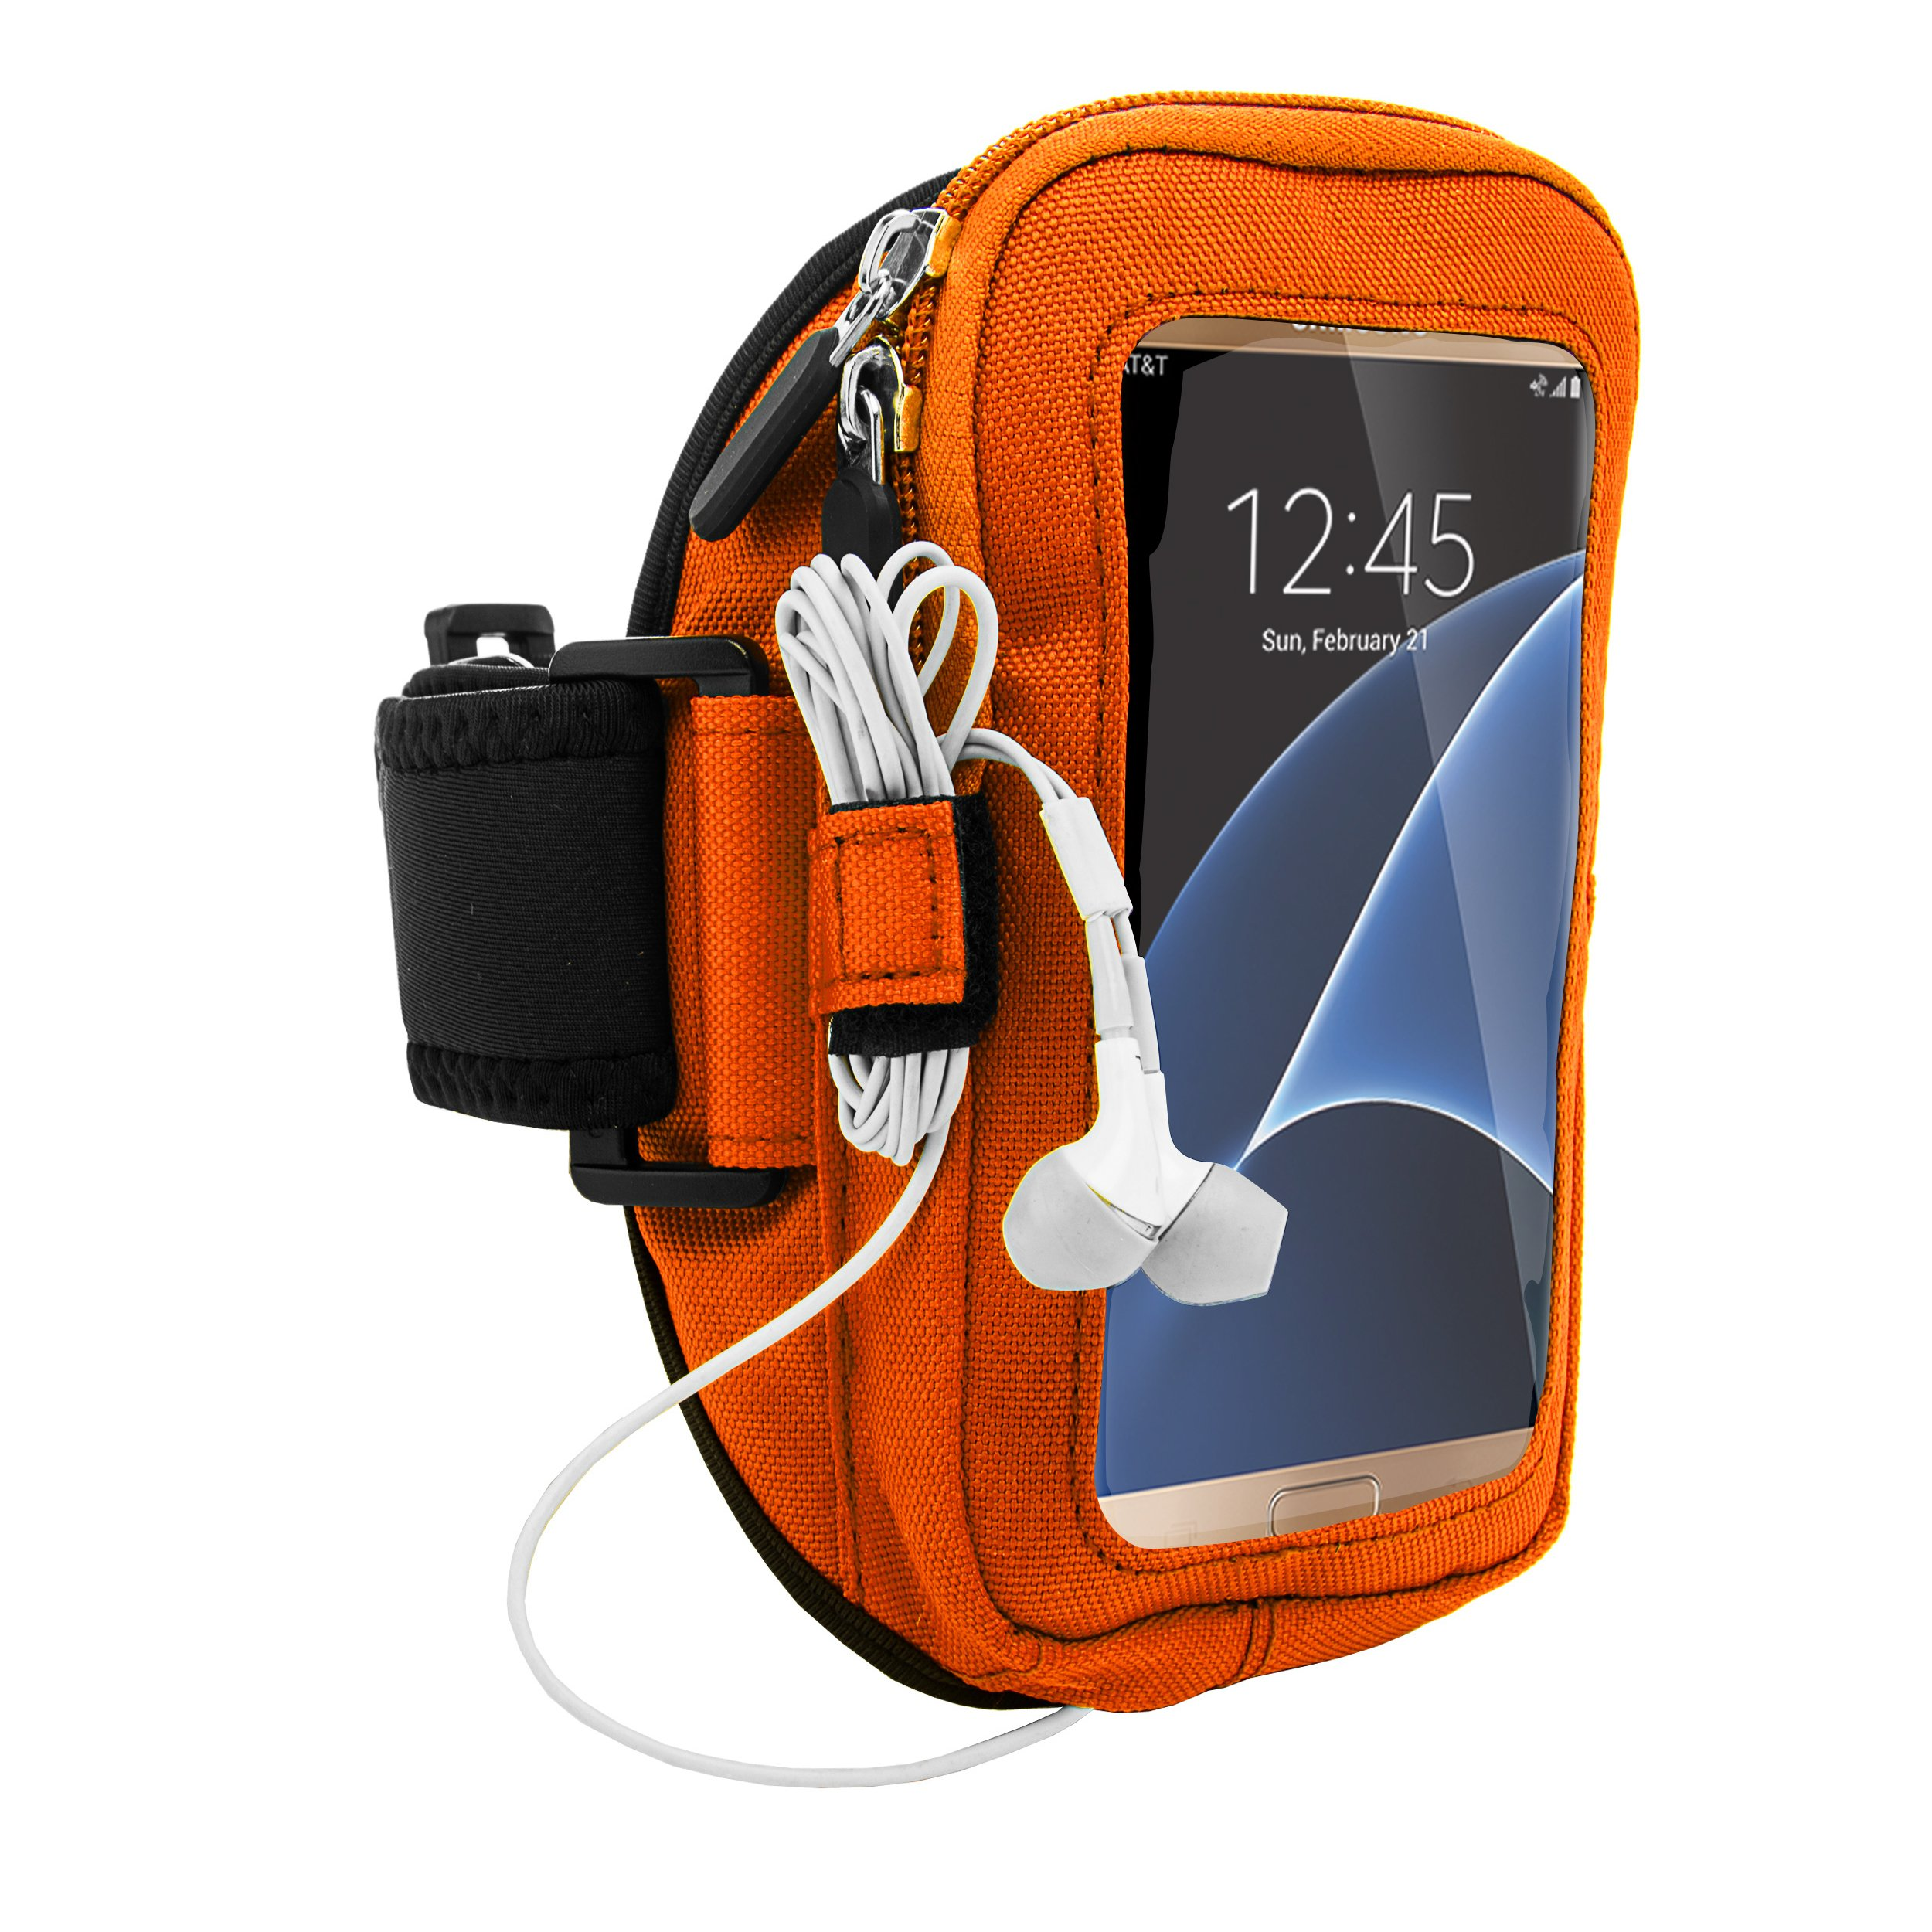 VanGoddy Universal Free Hands for Running Jogging Cycling Sports Gym Armband Case Cover for Samsung Galasy series S7 S6/Edge/A/E/J/Z/Note/On series 4.5 to 5.5 inch Android Phone